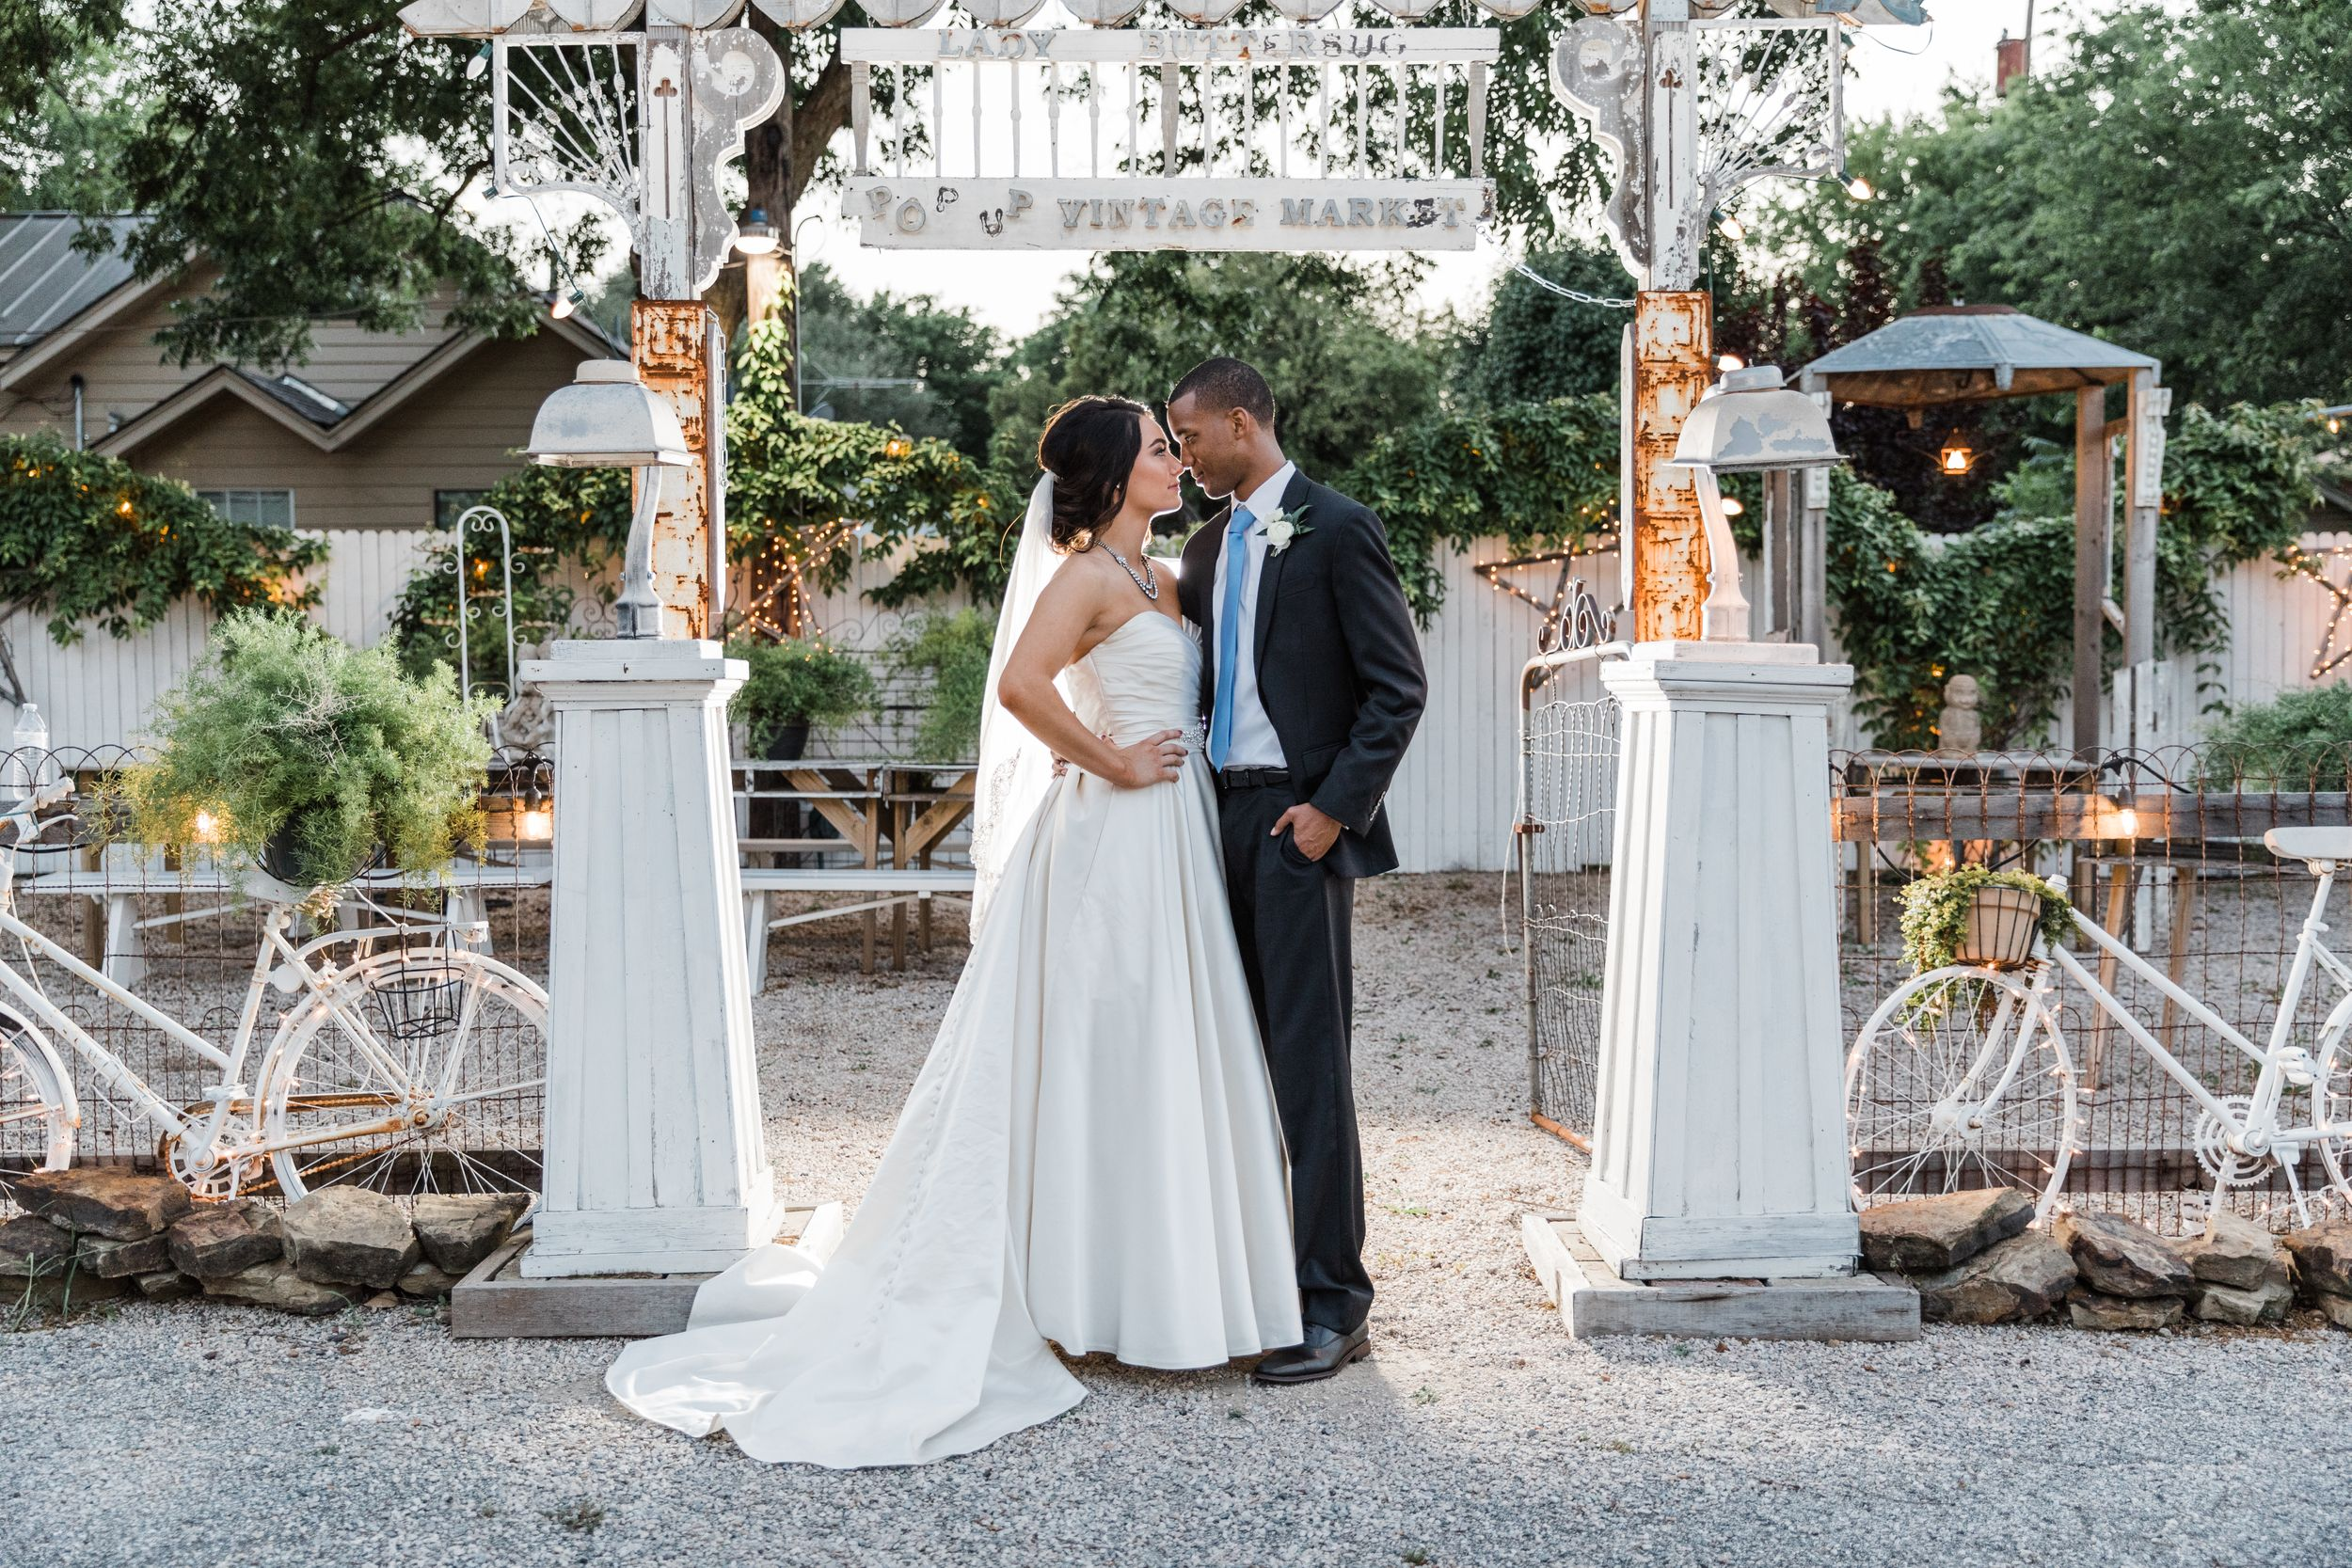 Bride-Groom-Texas-Mckinney-Summer-Weddings